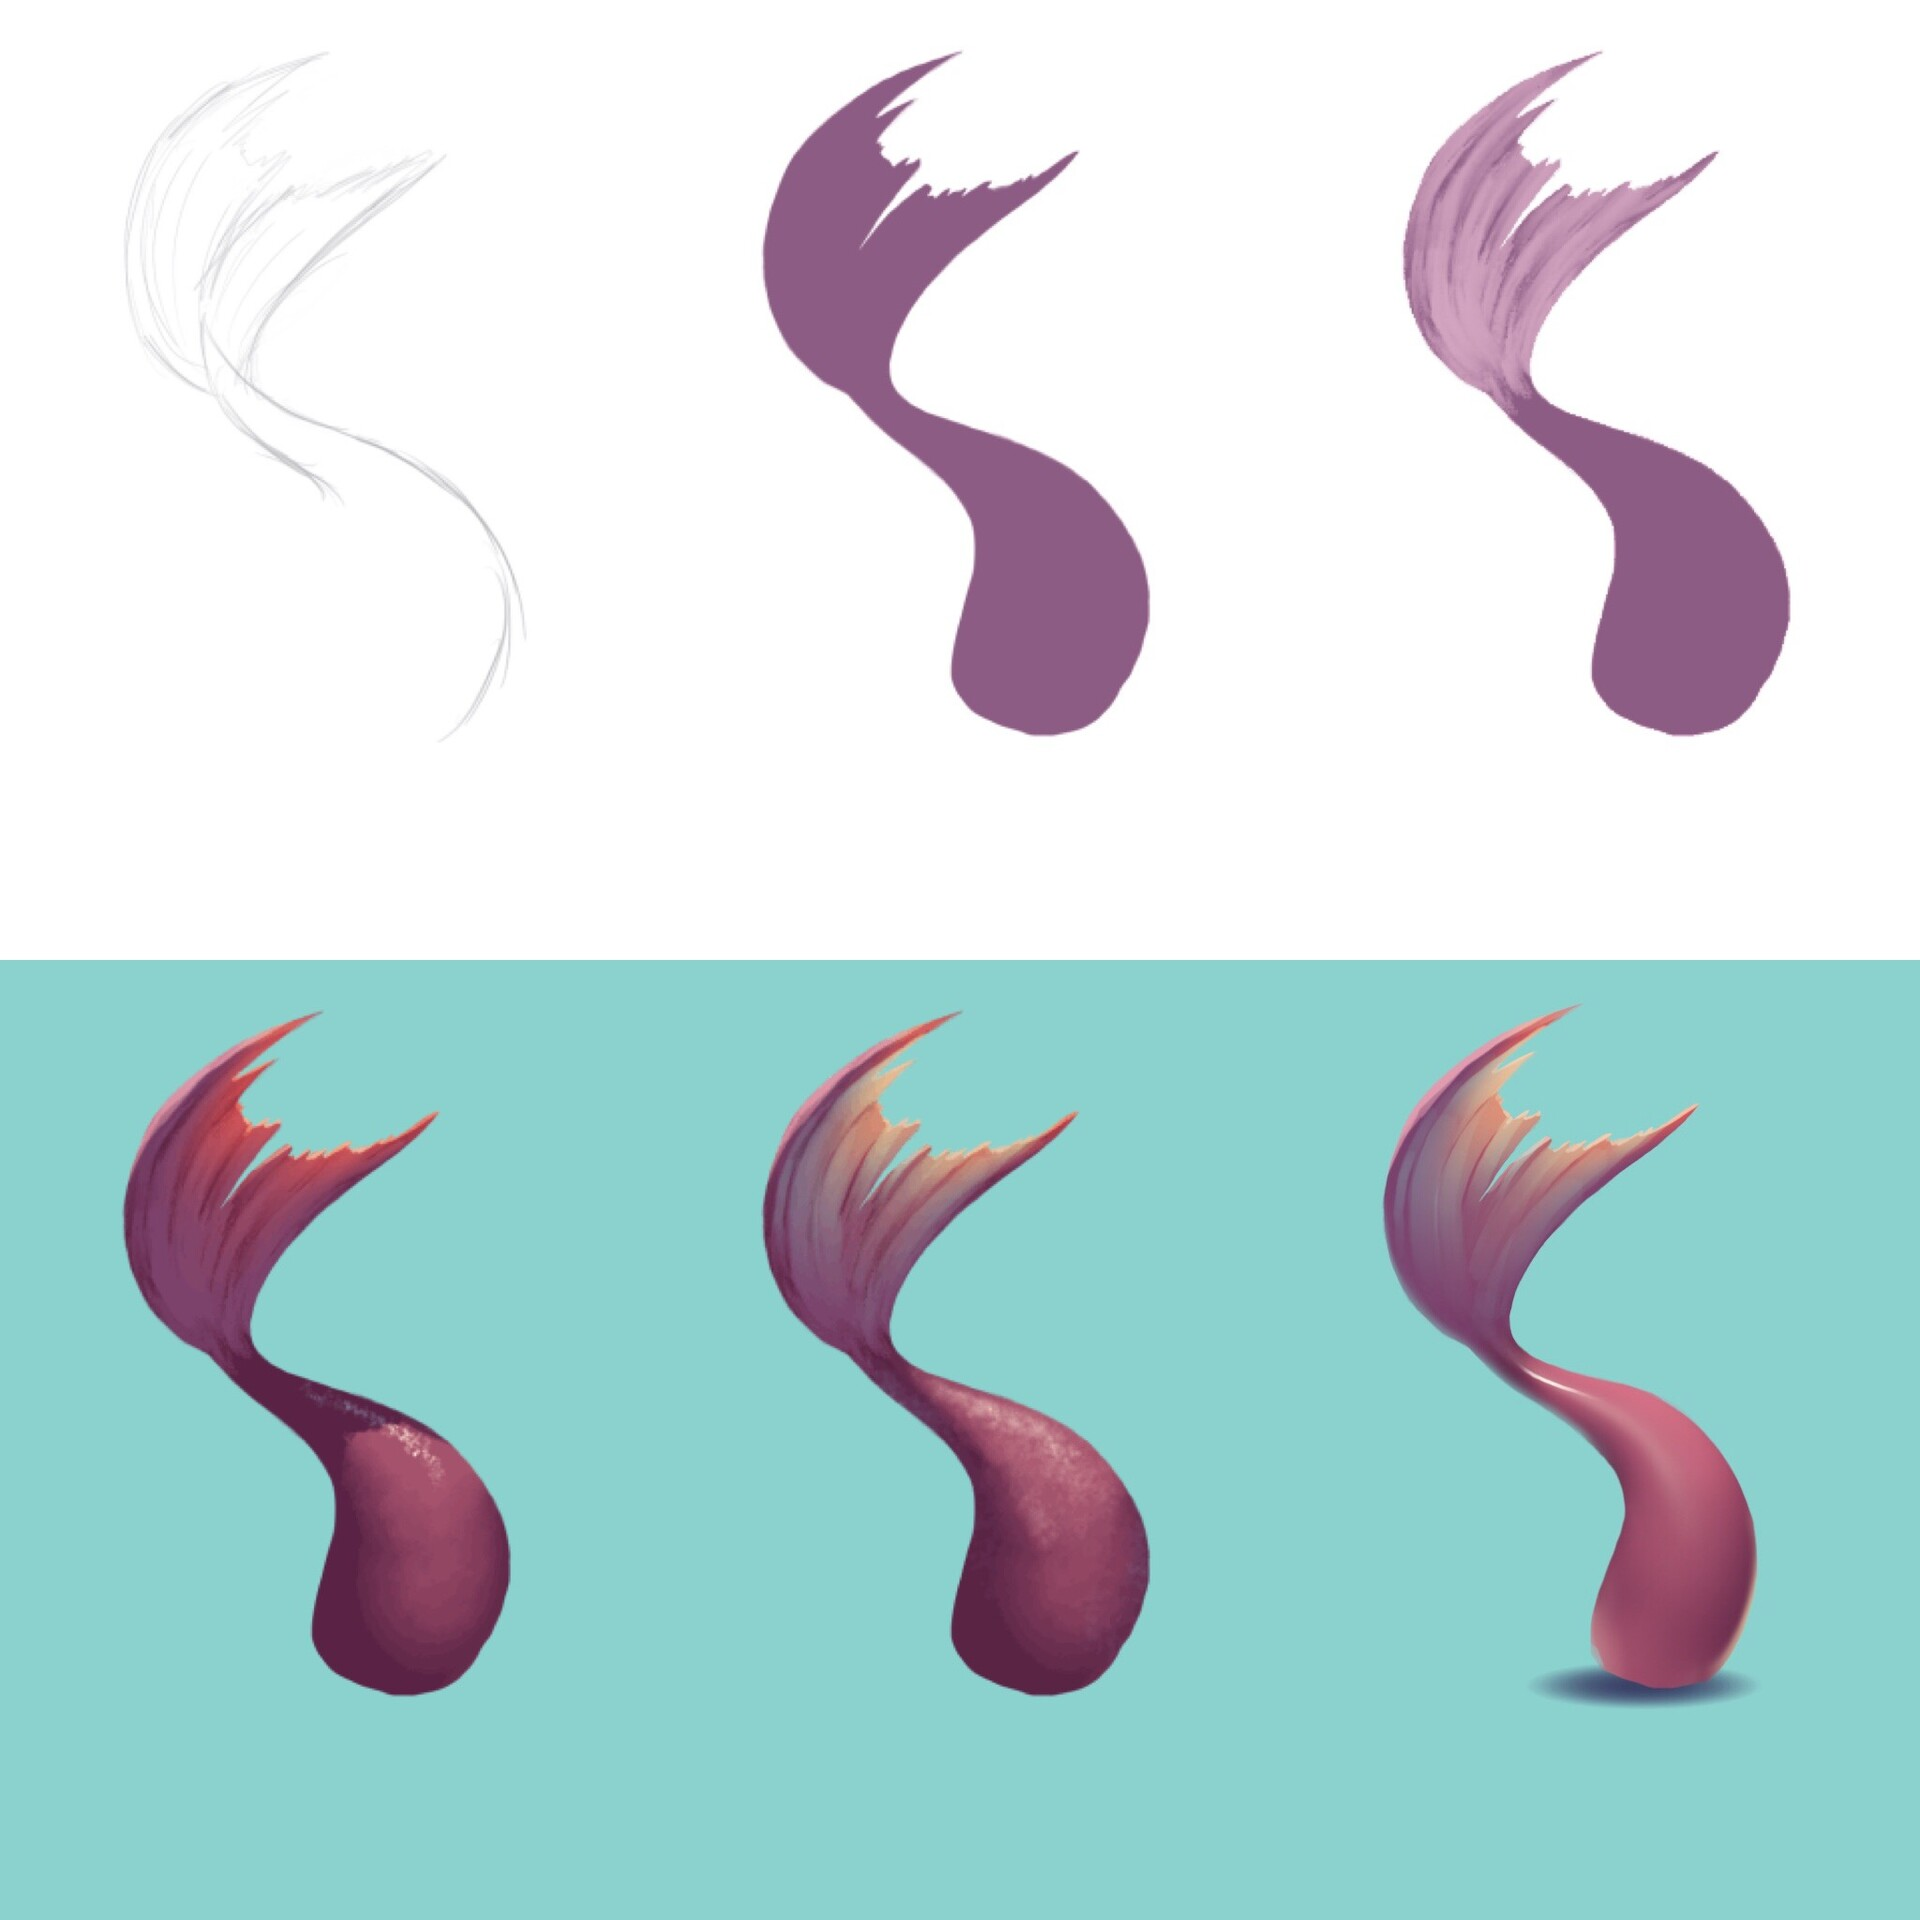 Tail rendering process. Simple brush strokes do the trick.